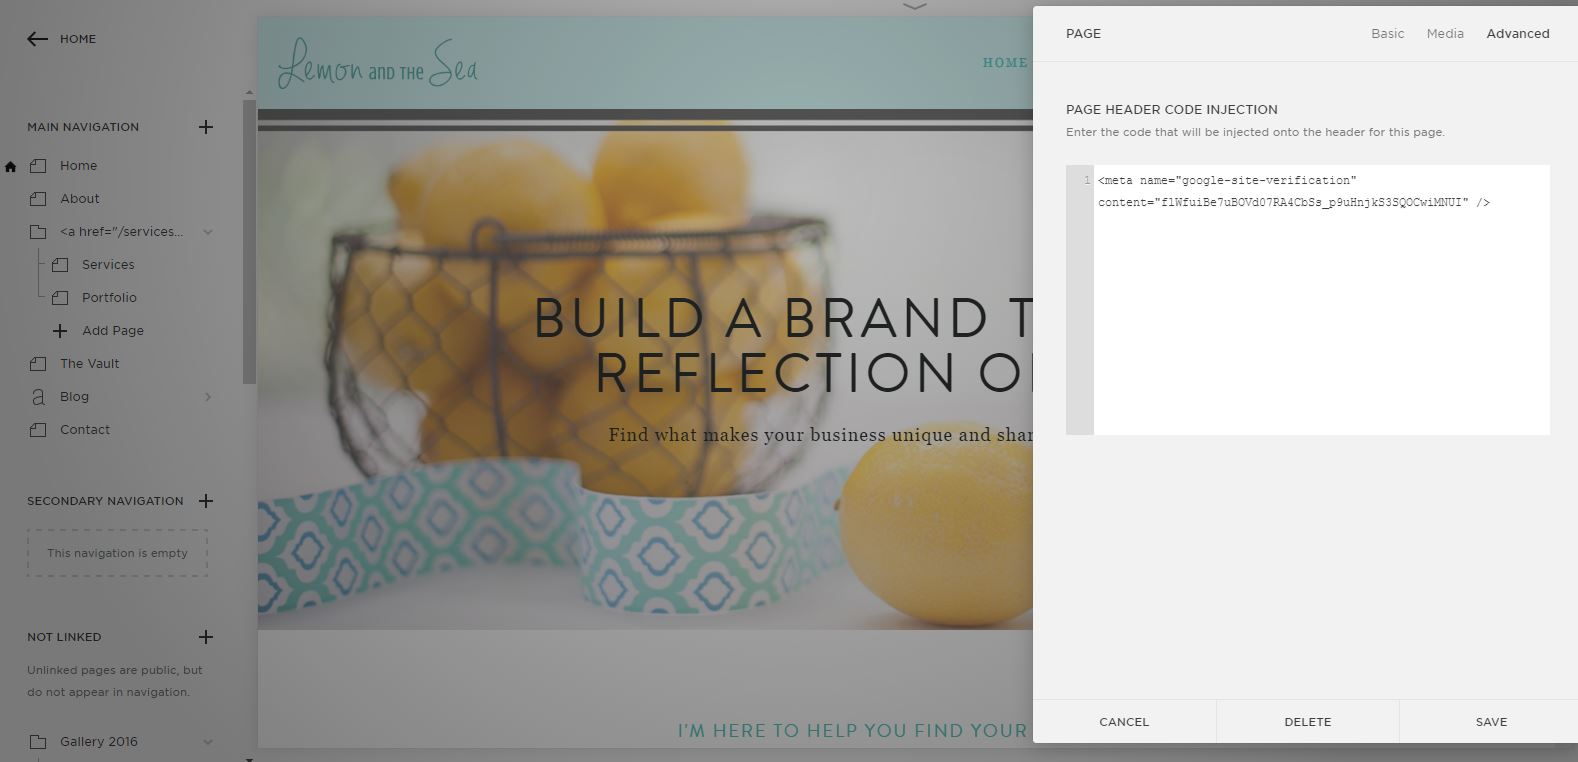 How to Customize Squarespace to Fit Your Brand   Lemon and the Sea: My favorite CSS tricks to customize your Squarespace template and give you more control over the design of your website. If you have a little coding knowledge and a Squarespace website, you can make some small changes that have a big impact. Make your website stand out with Custom CSS!